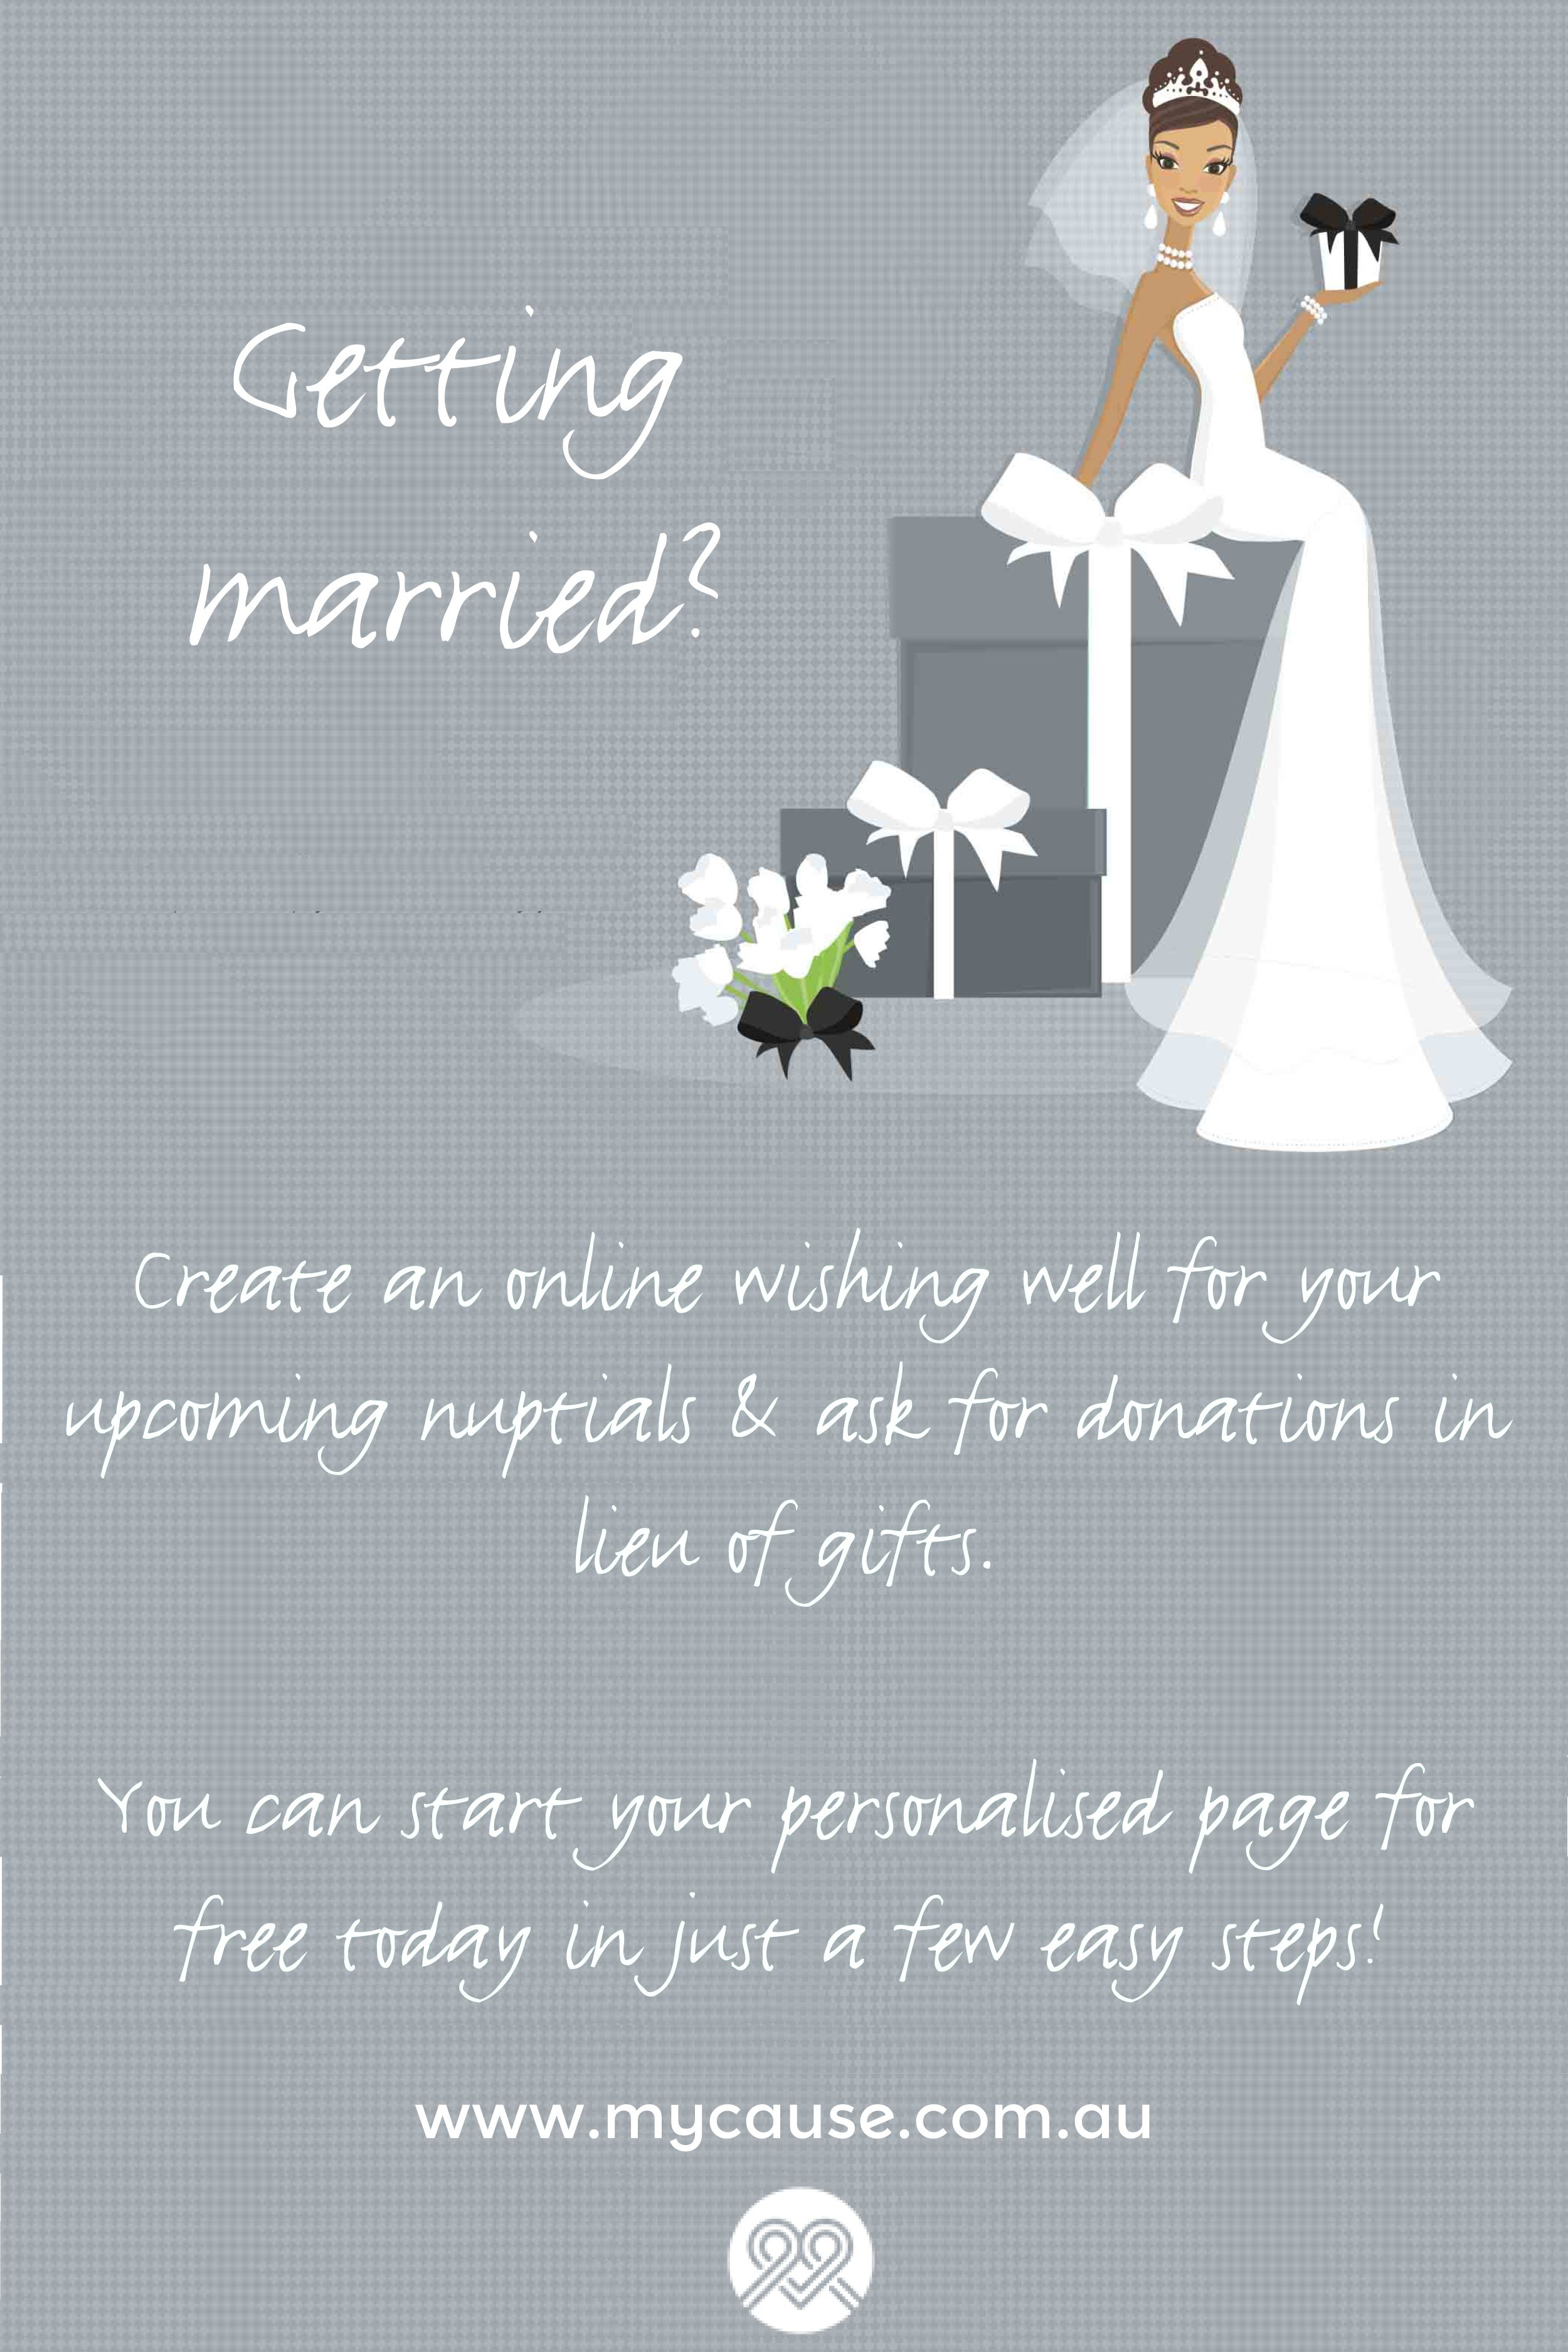 Create an online wishing well for your upcoming wedding